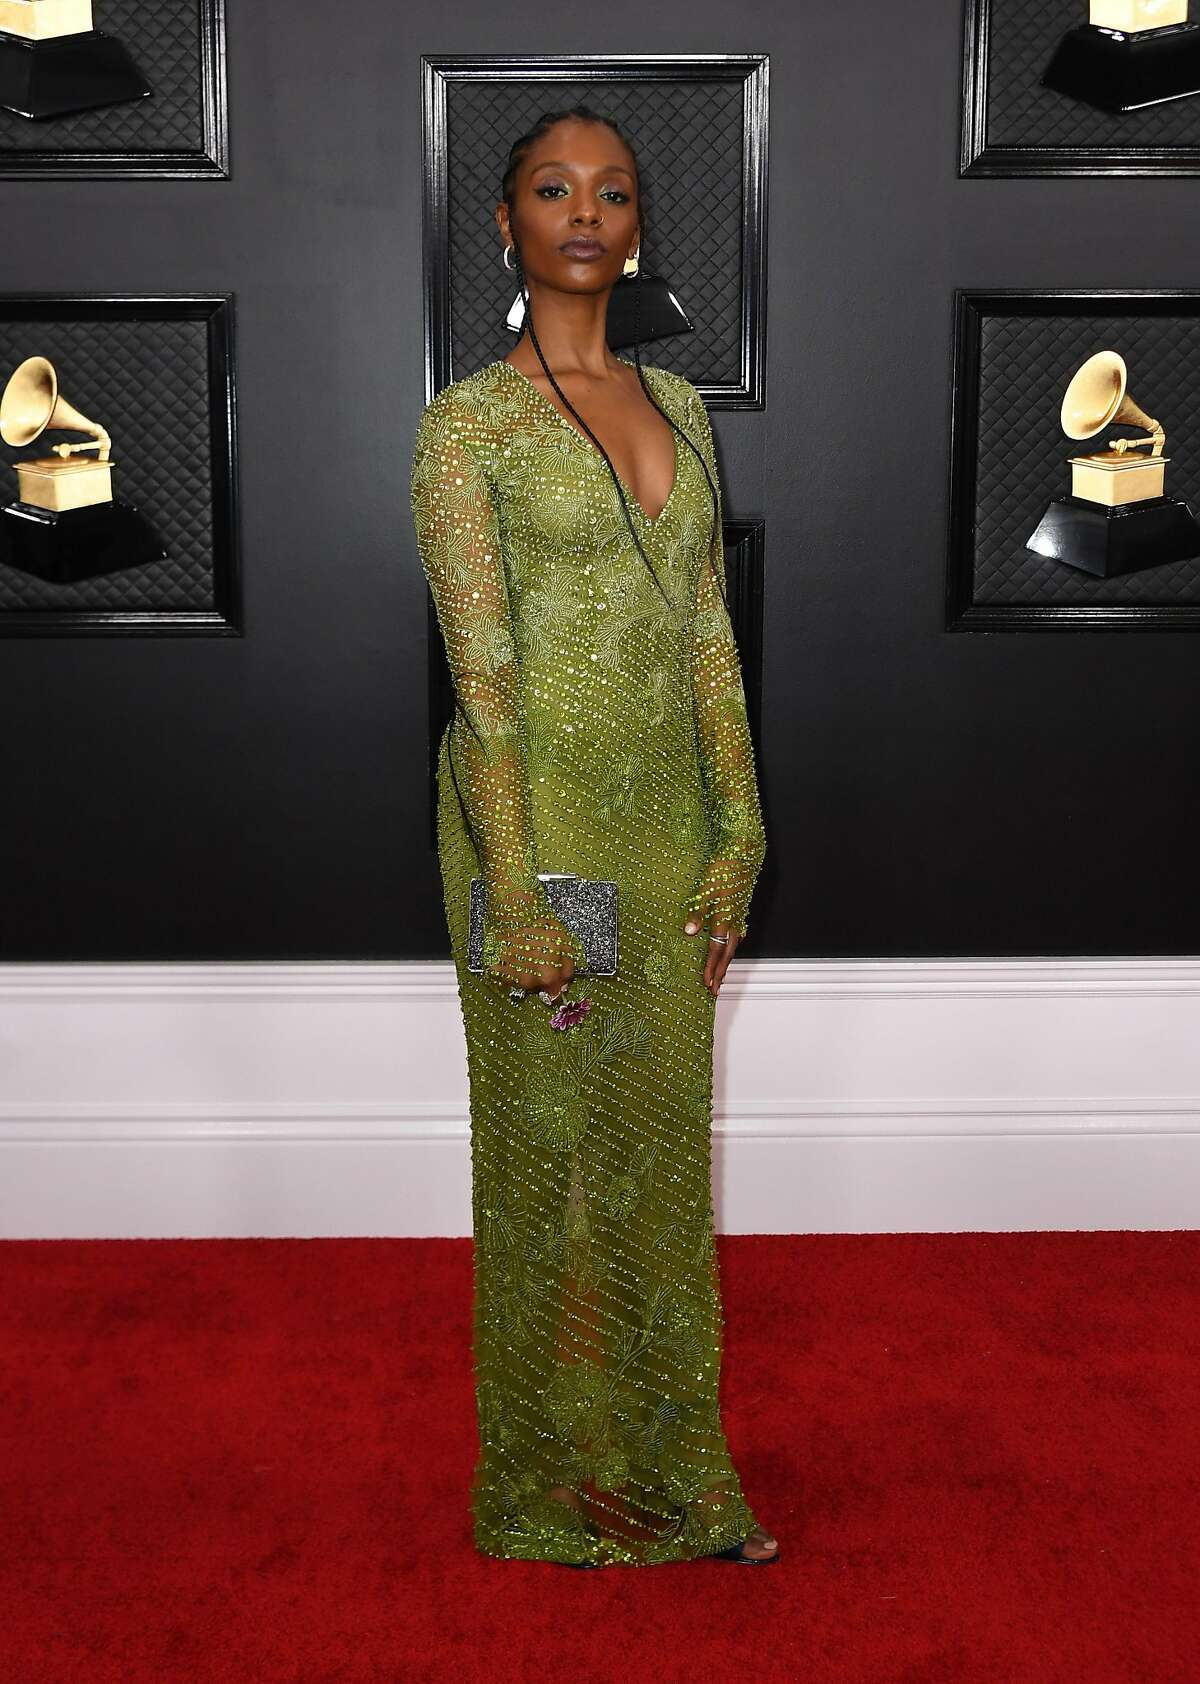 US singer-songwriter Mereba arrives for the 62nd Annual Grammy Awards on January 26, 2020, in Los Angeles. (Photo by VALERIE MACON / AFP) (Photo by VALERIE MACON/AFP via Getty Images)